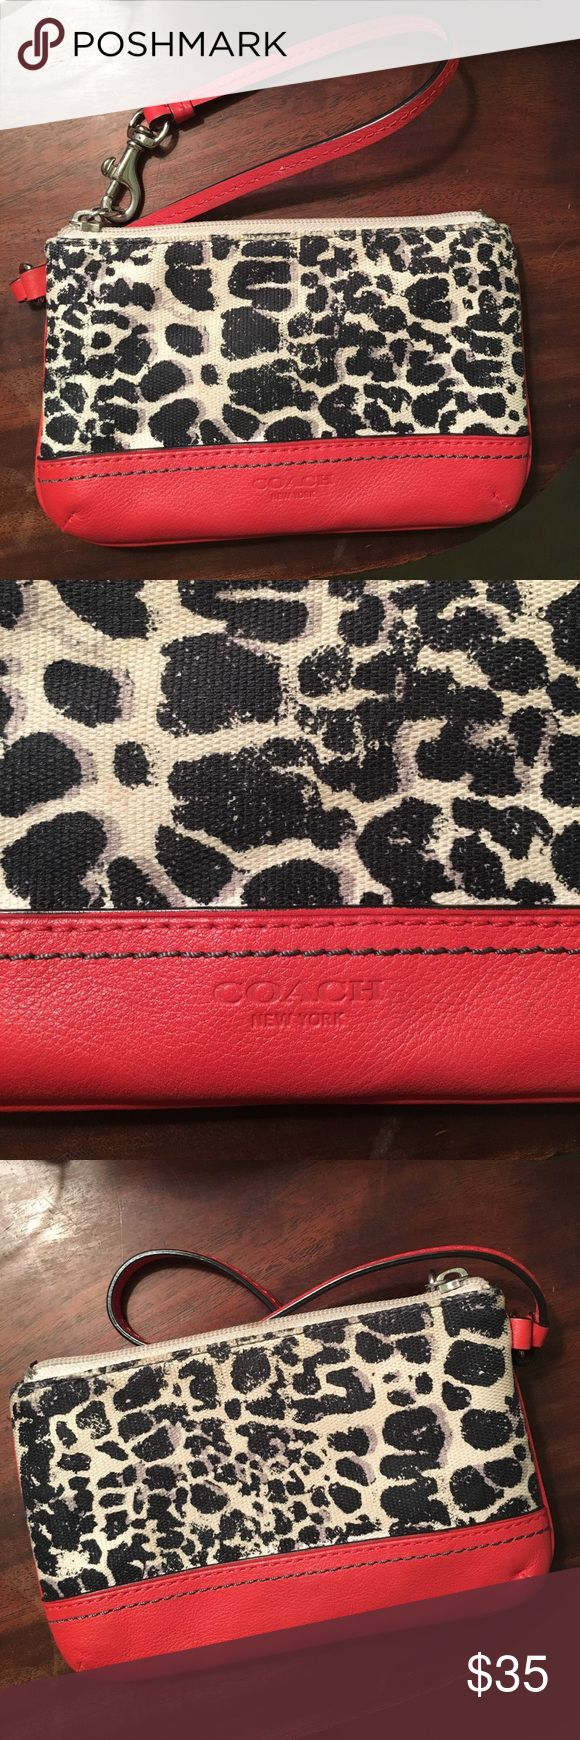 Coach Legacy Ocelot Wristlet Coach legacy ocelot wristlet! There is a discount for two or more items in a bundle! Coach Bags Clutches & Wristlets